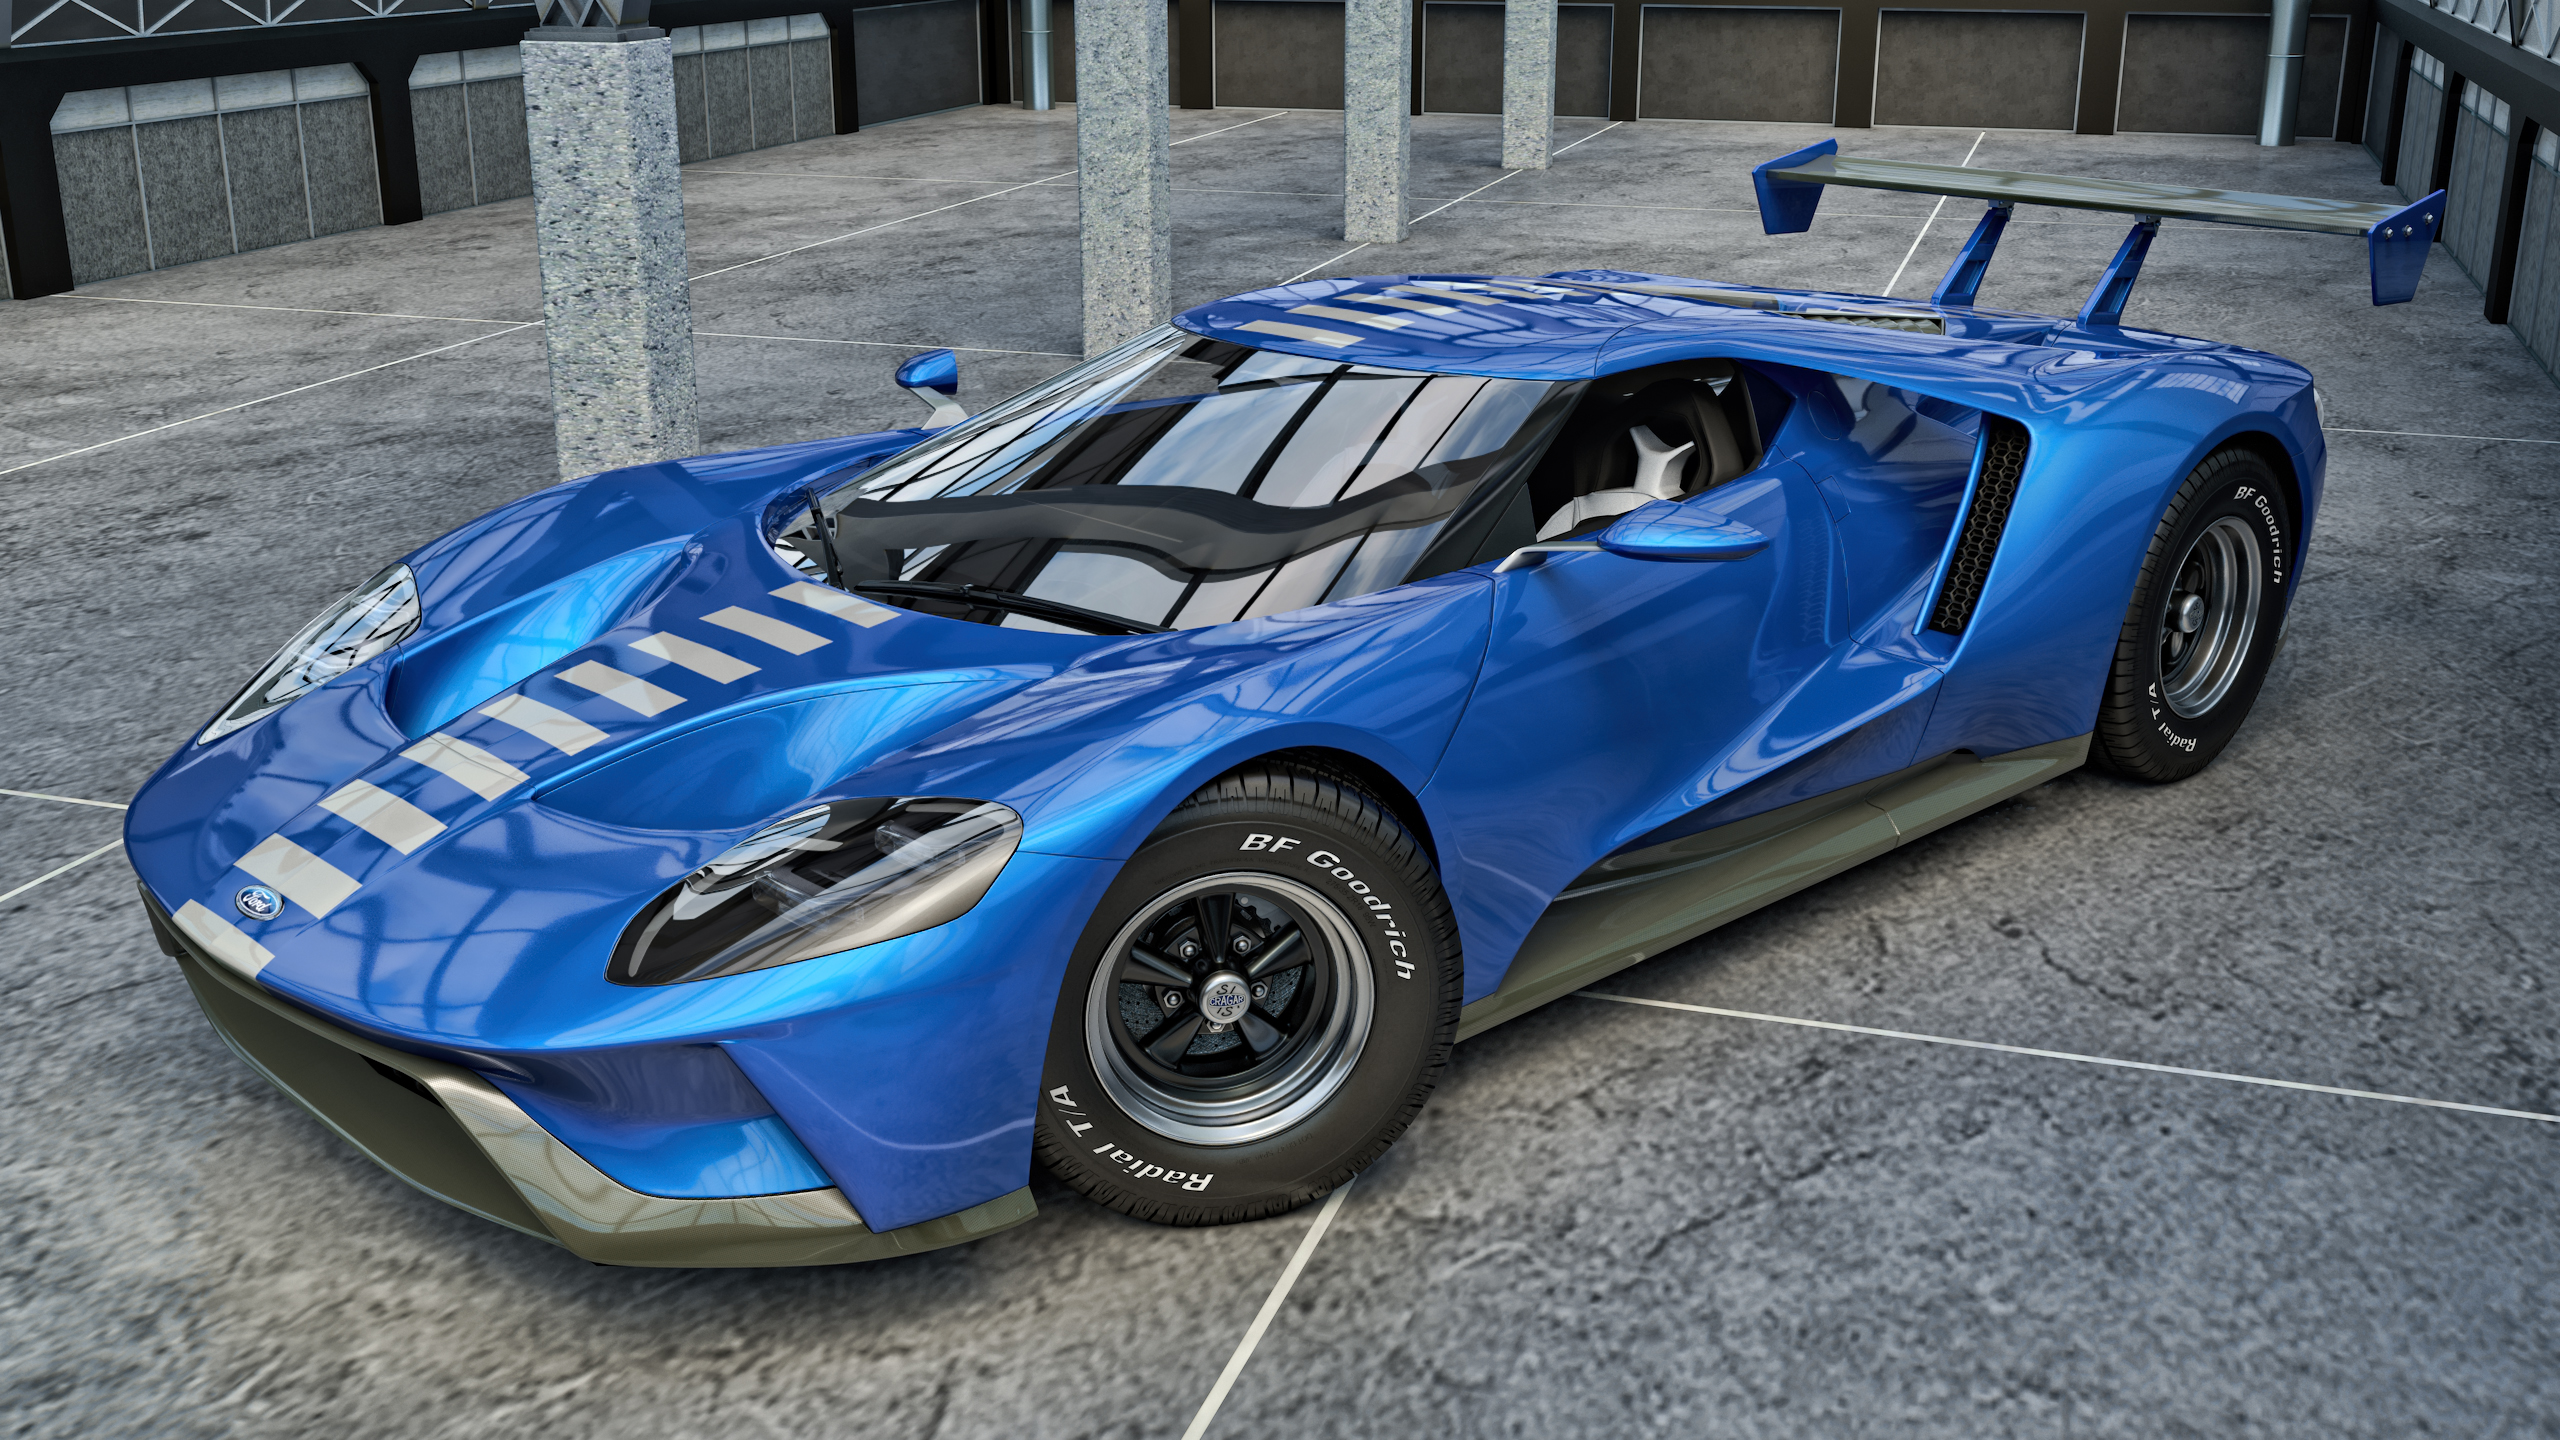 2017 Ford GT by SamCurry 2560x1440